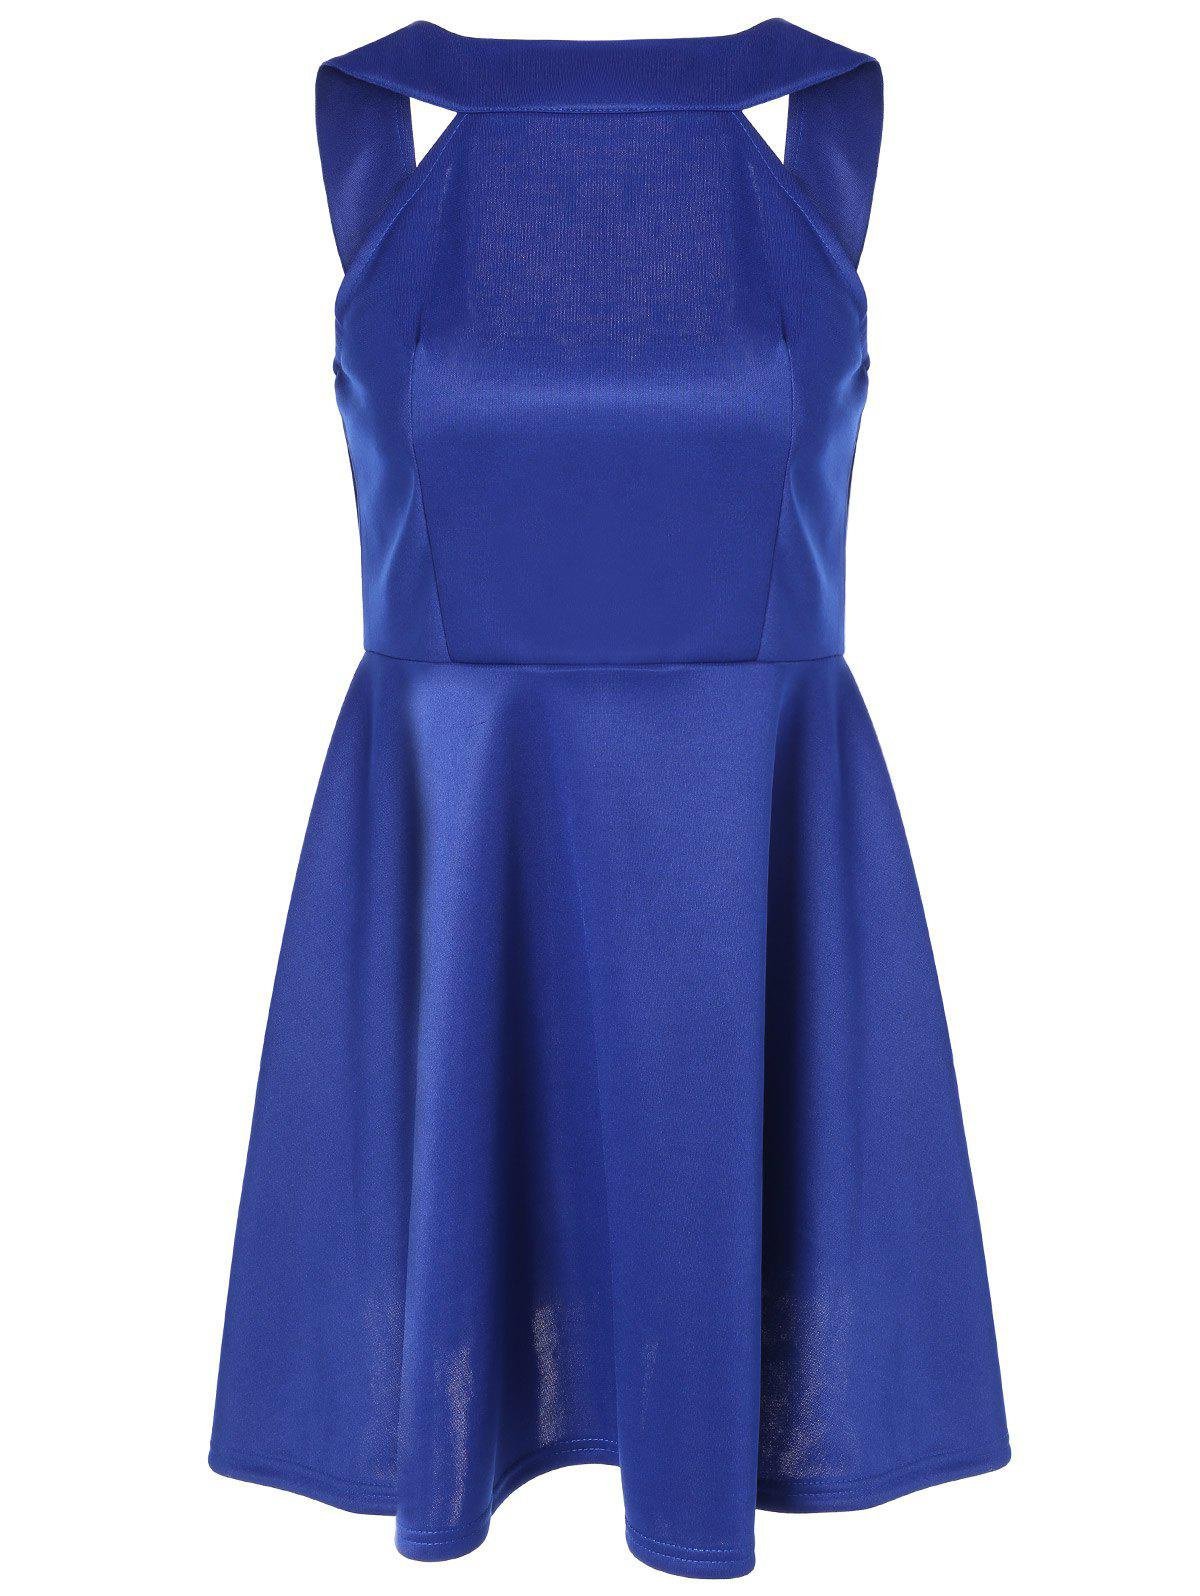 Online Sleeveless Backless Fit and Flare Dress